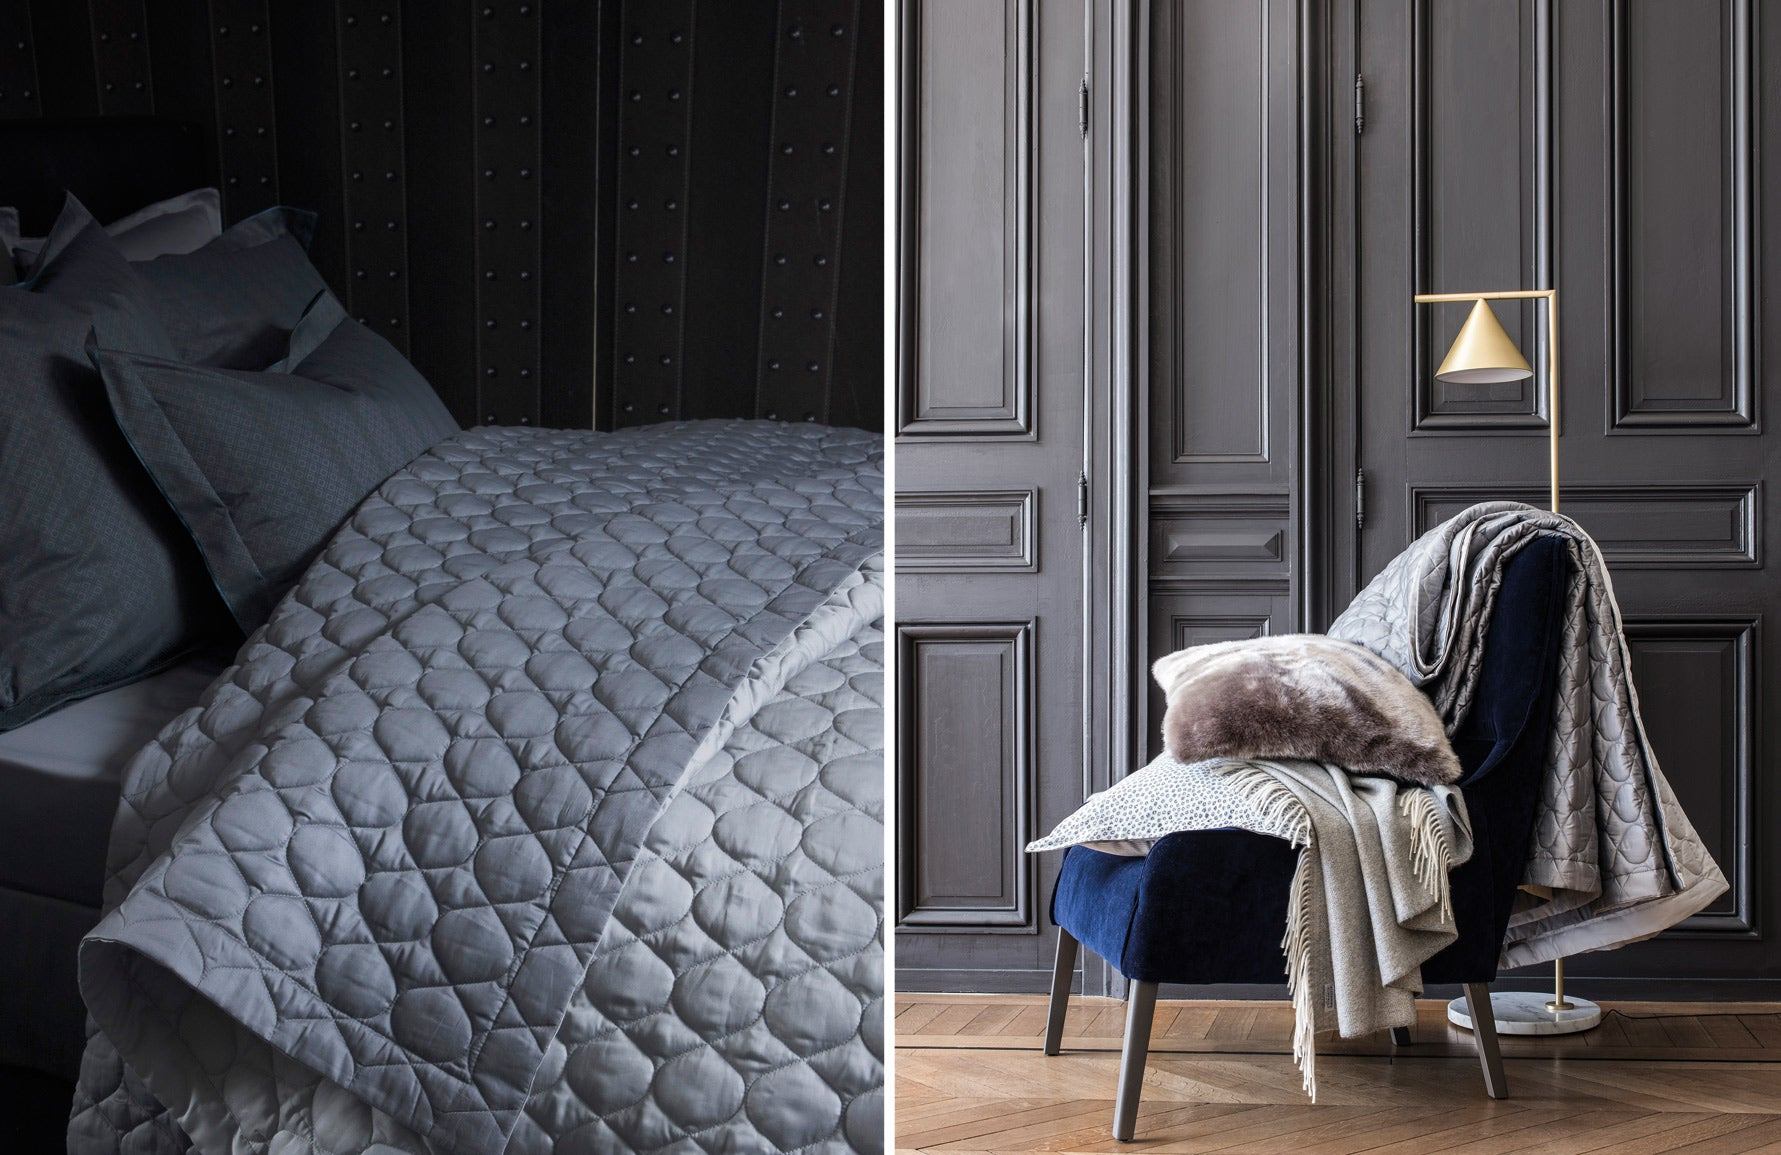 Alexandre Turpault | Shop luxury bedding at LuxDeco.com